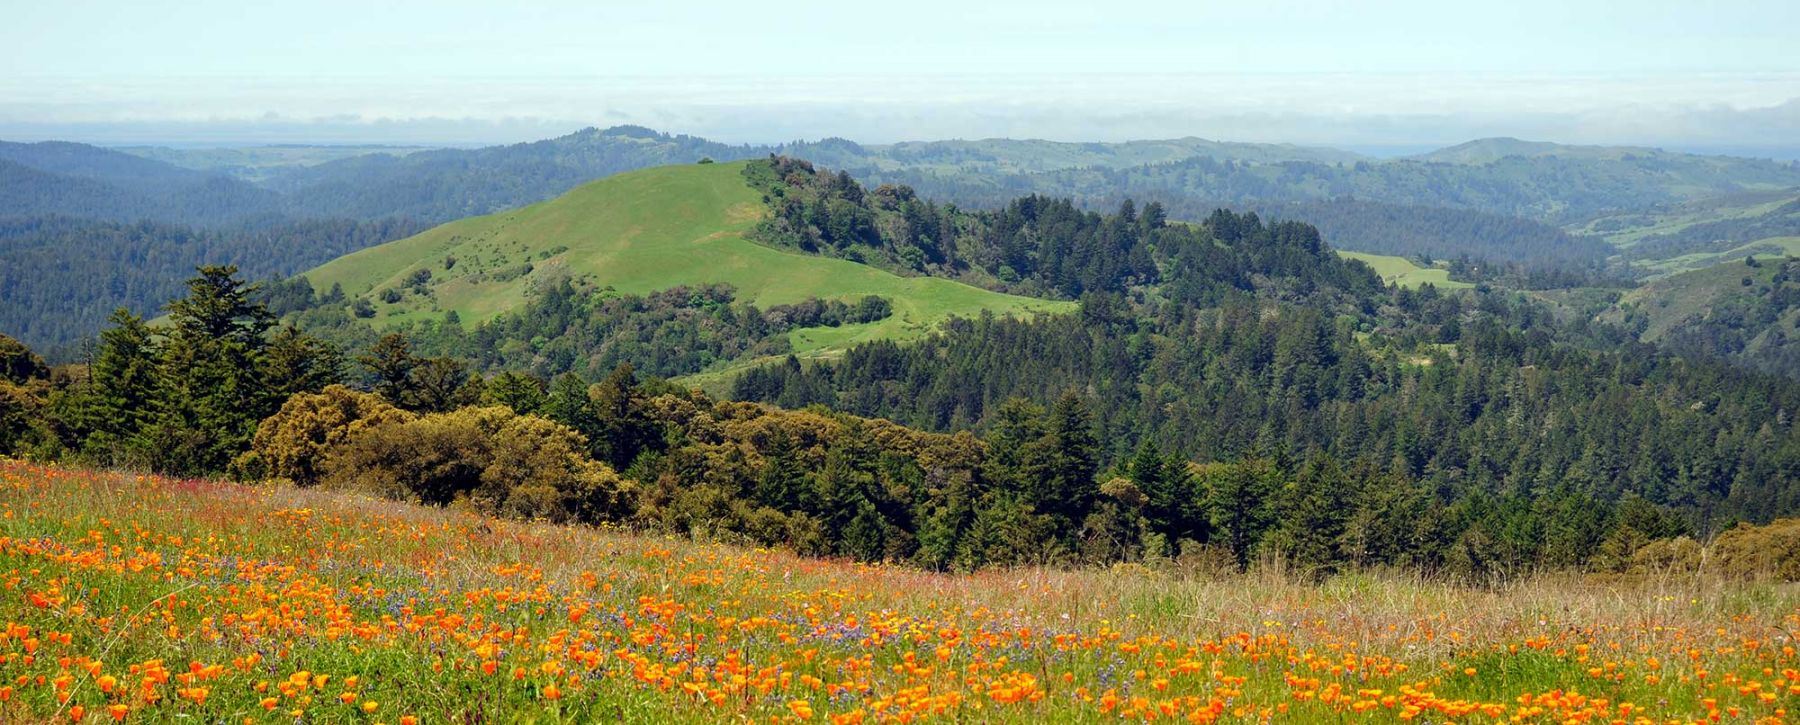 California Poppies in Santa Cruz Mountains